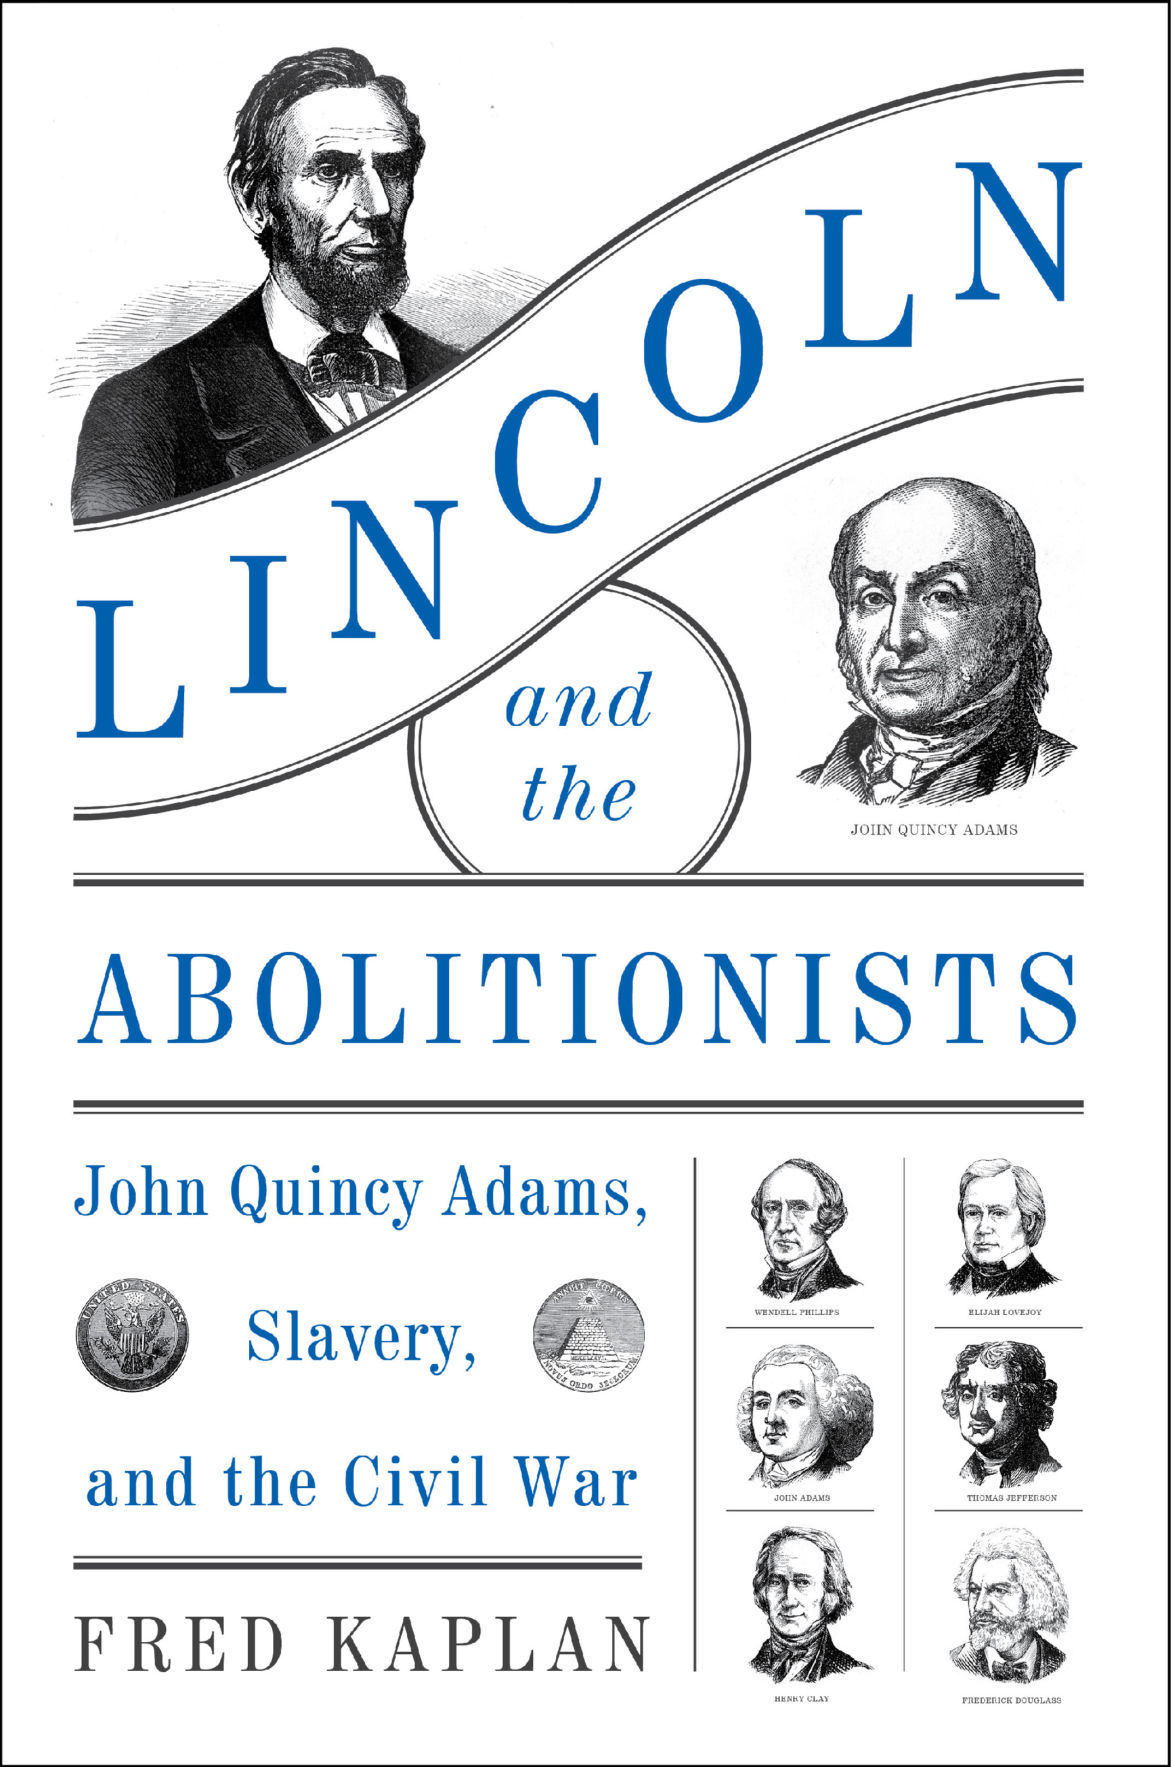 the american abolitionists book review Narrative of the life of frederick douglass has 71,783 ratings and 3,061 reviews book review i first read the narrative of the life of frederick douglas, an american slave, written in 1845, is, perhaps, the most famous.